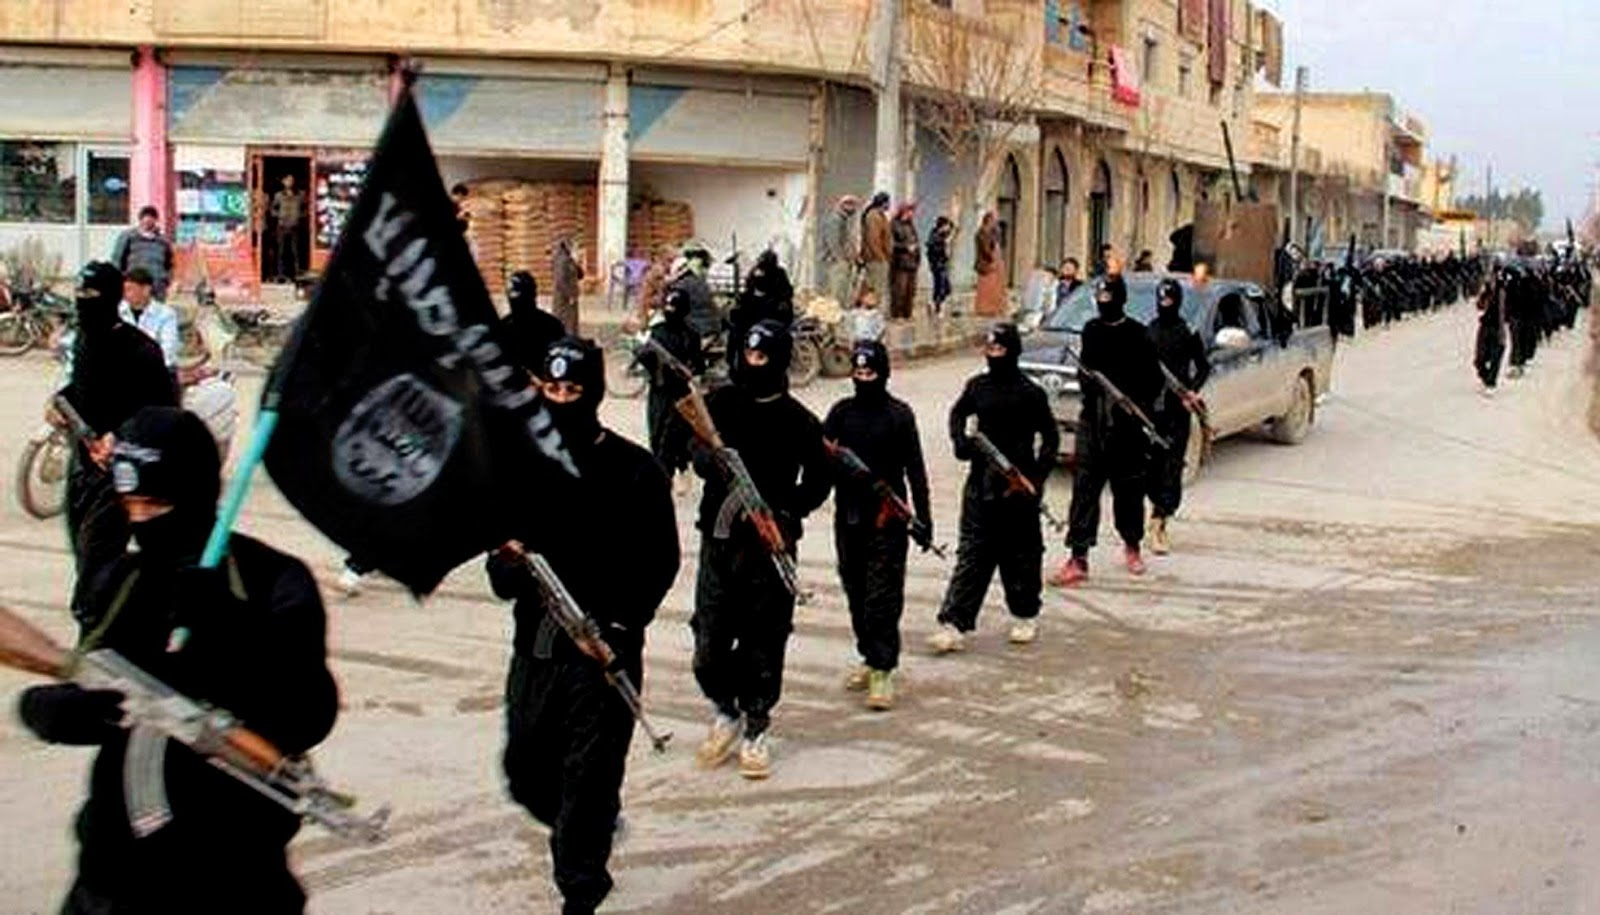 ISIL terrorists parading